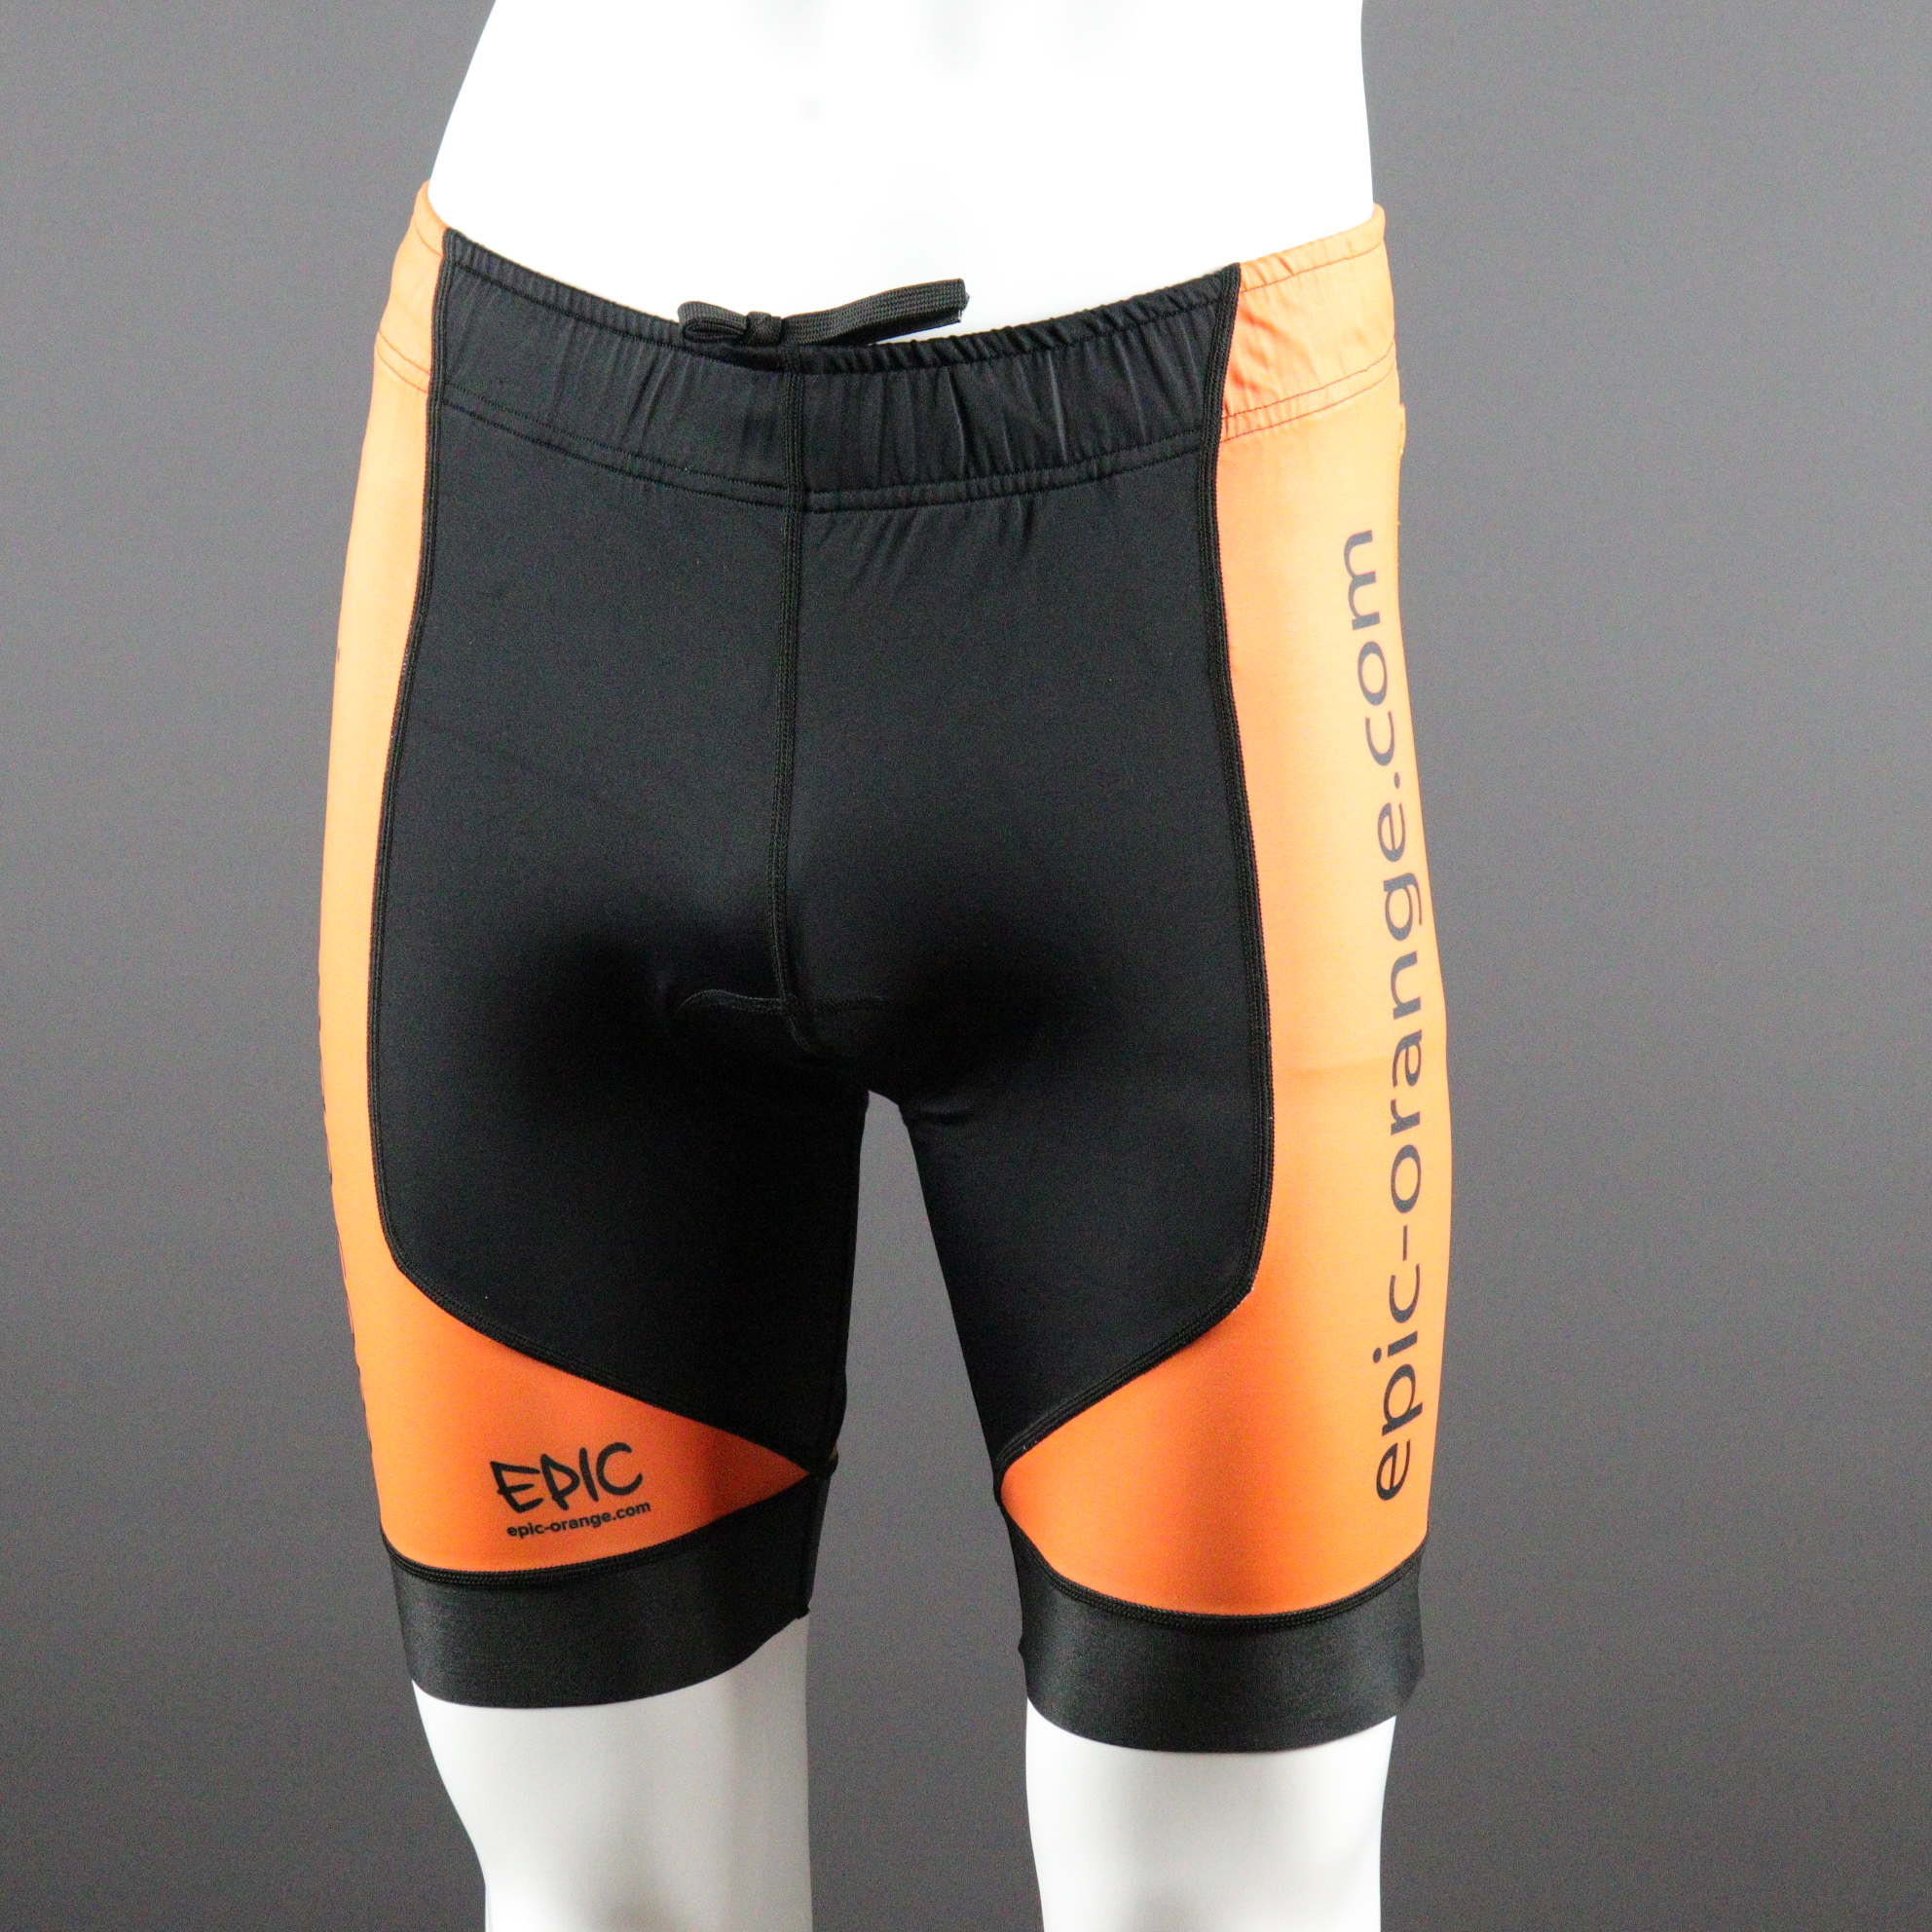 Endurance Tri Shorts - Corded closure.